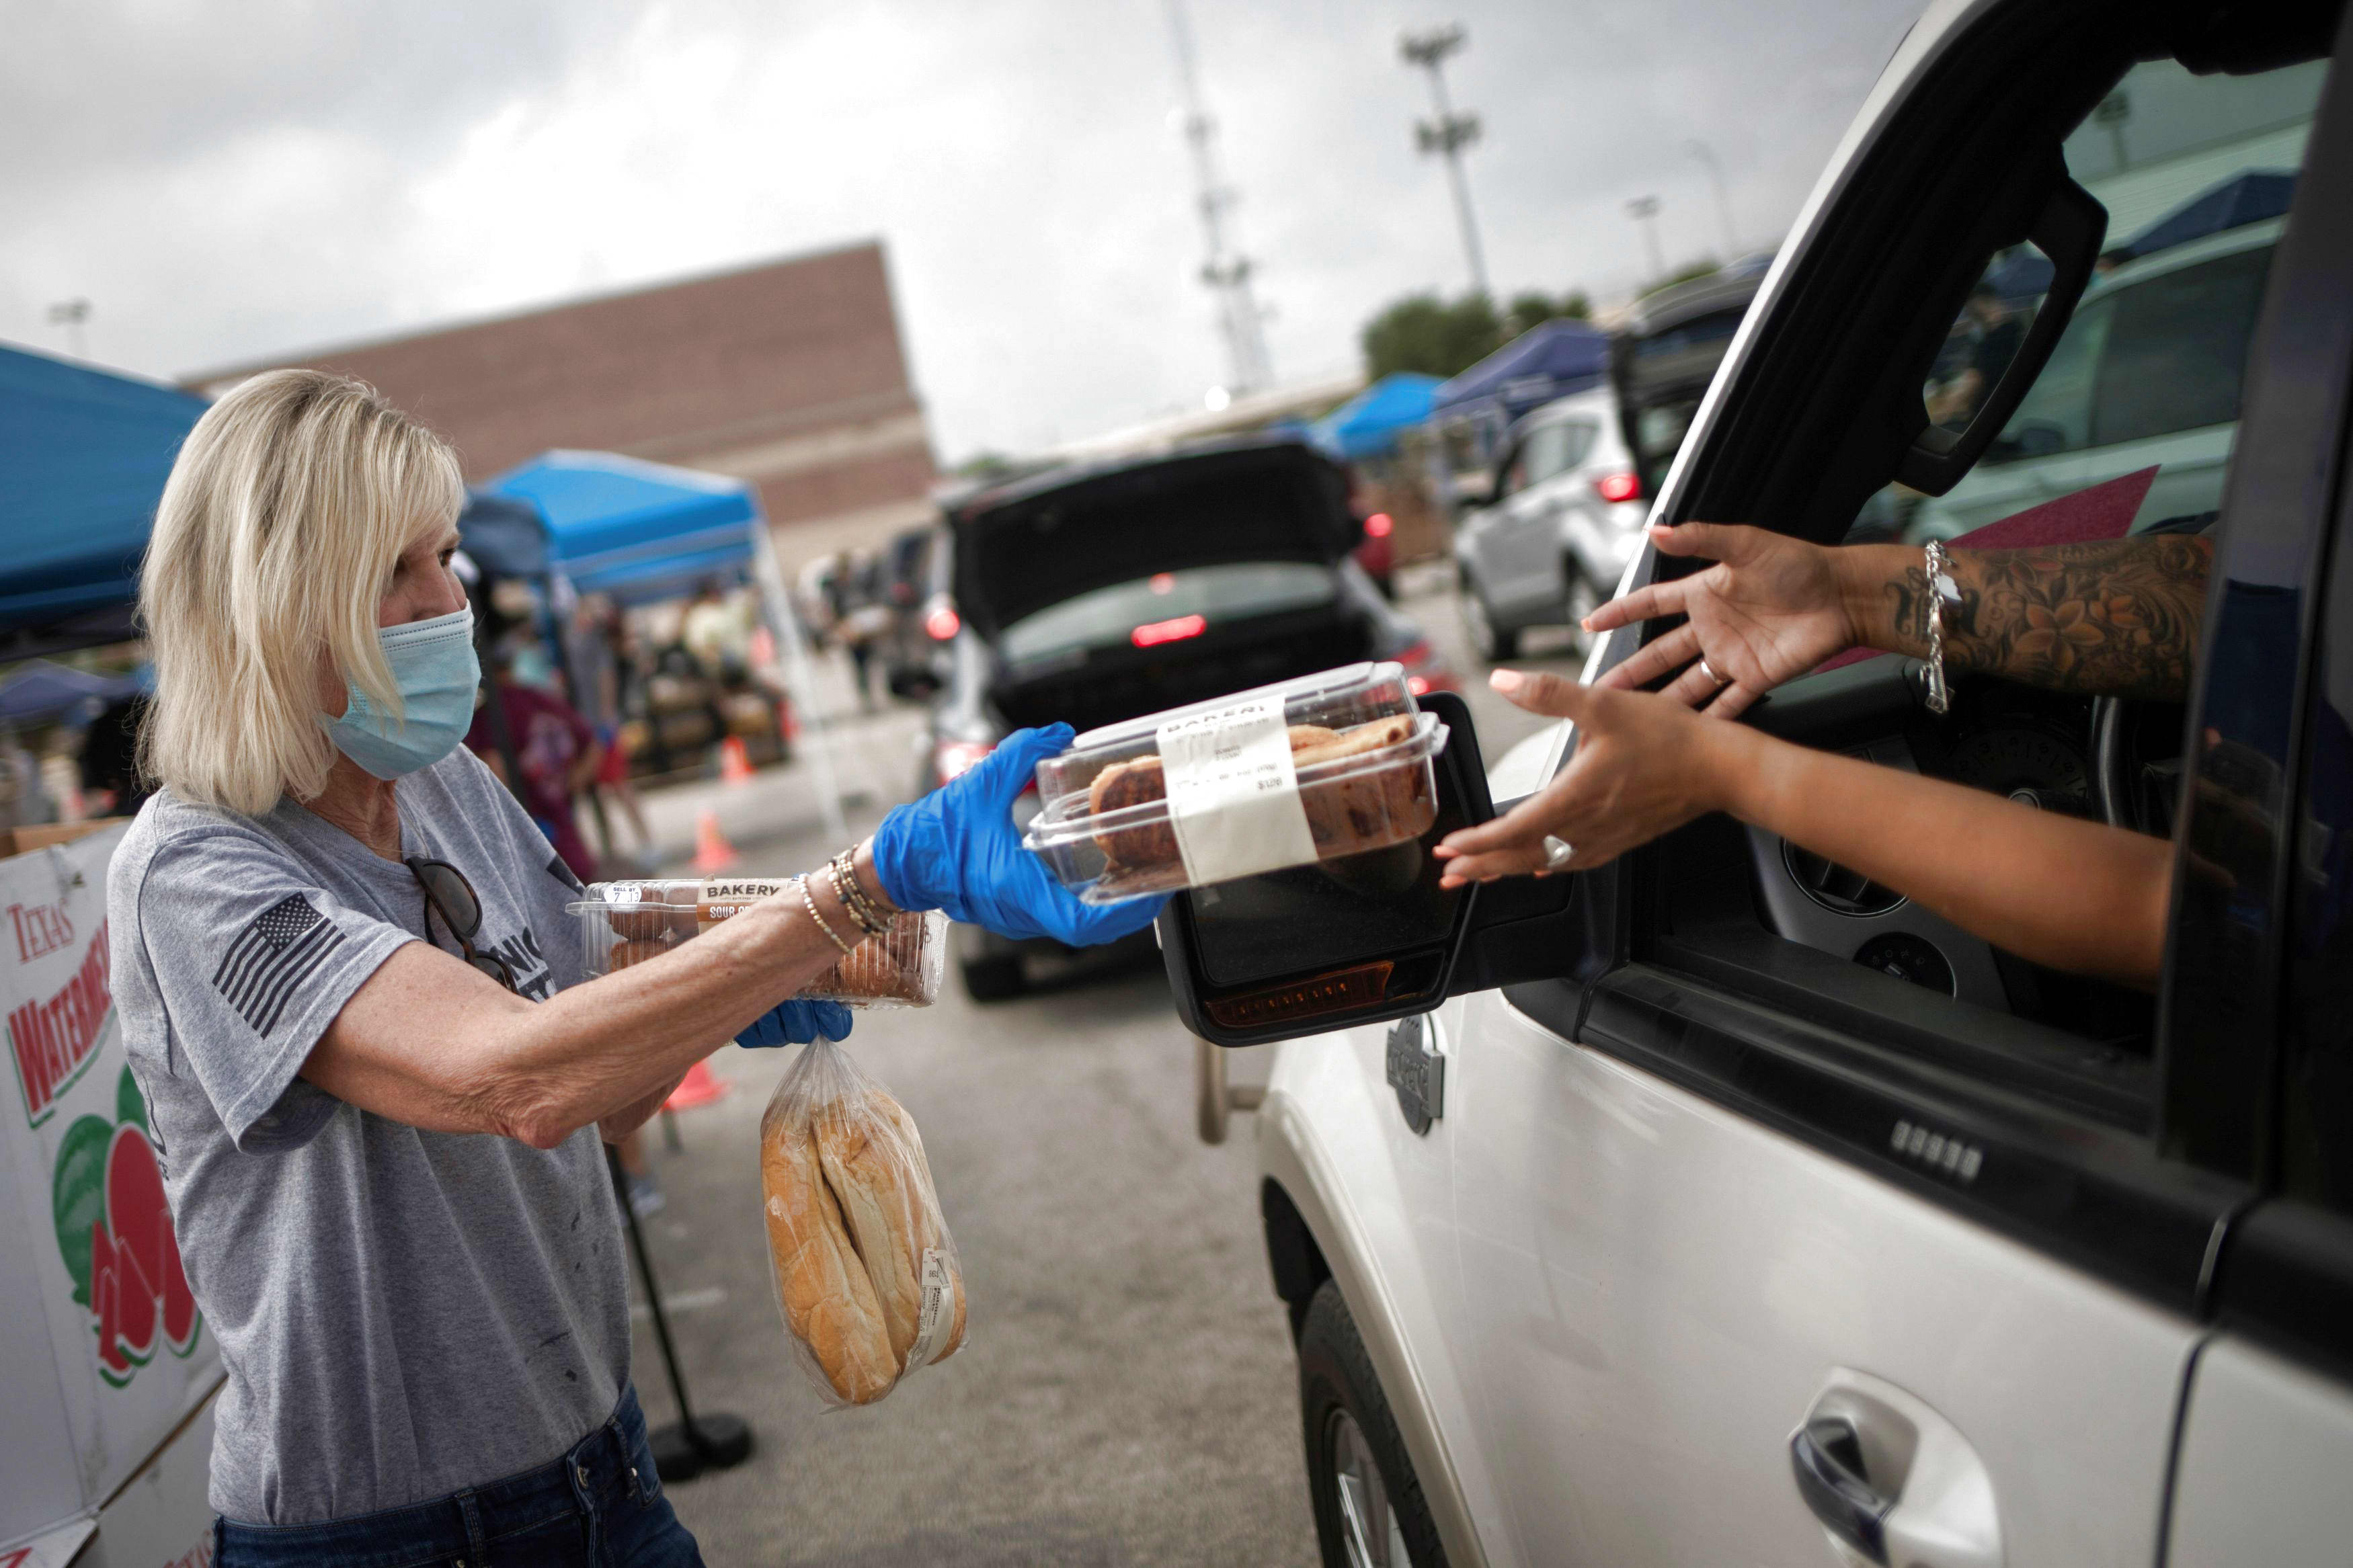 Texas food bank doubles amount of people it serves amid coronavirus pandemic